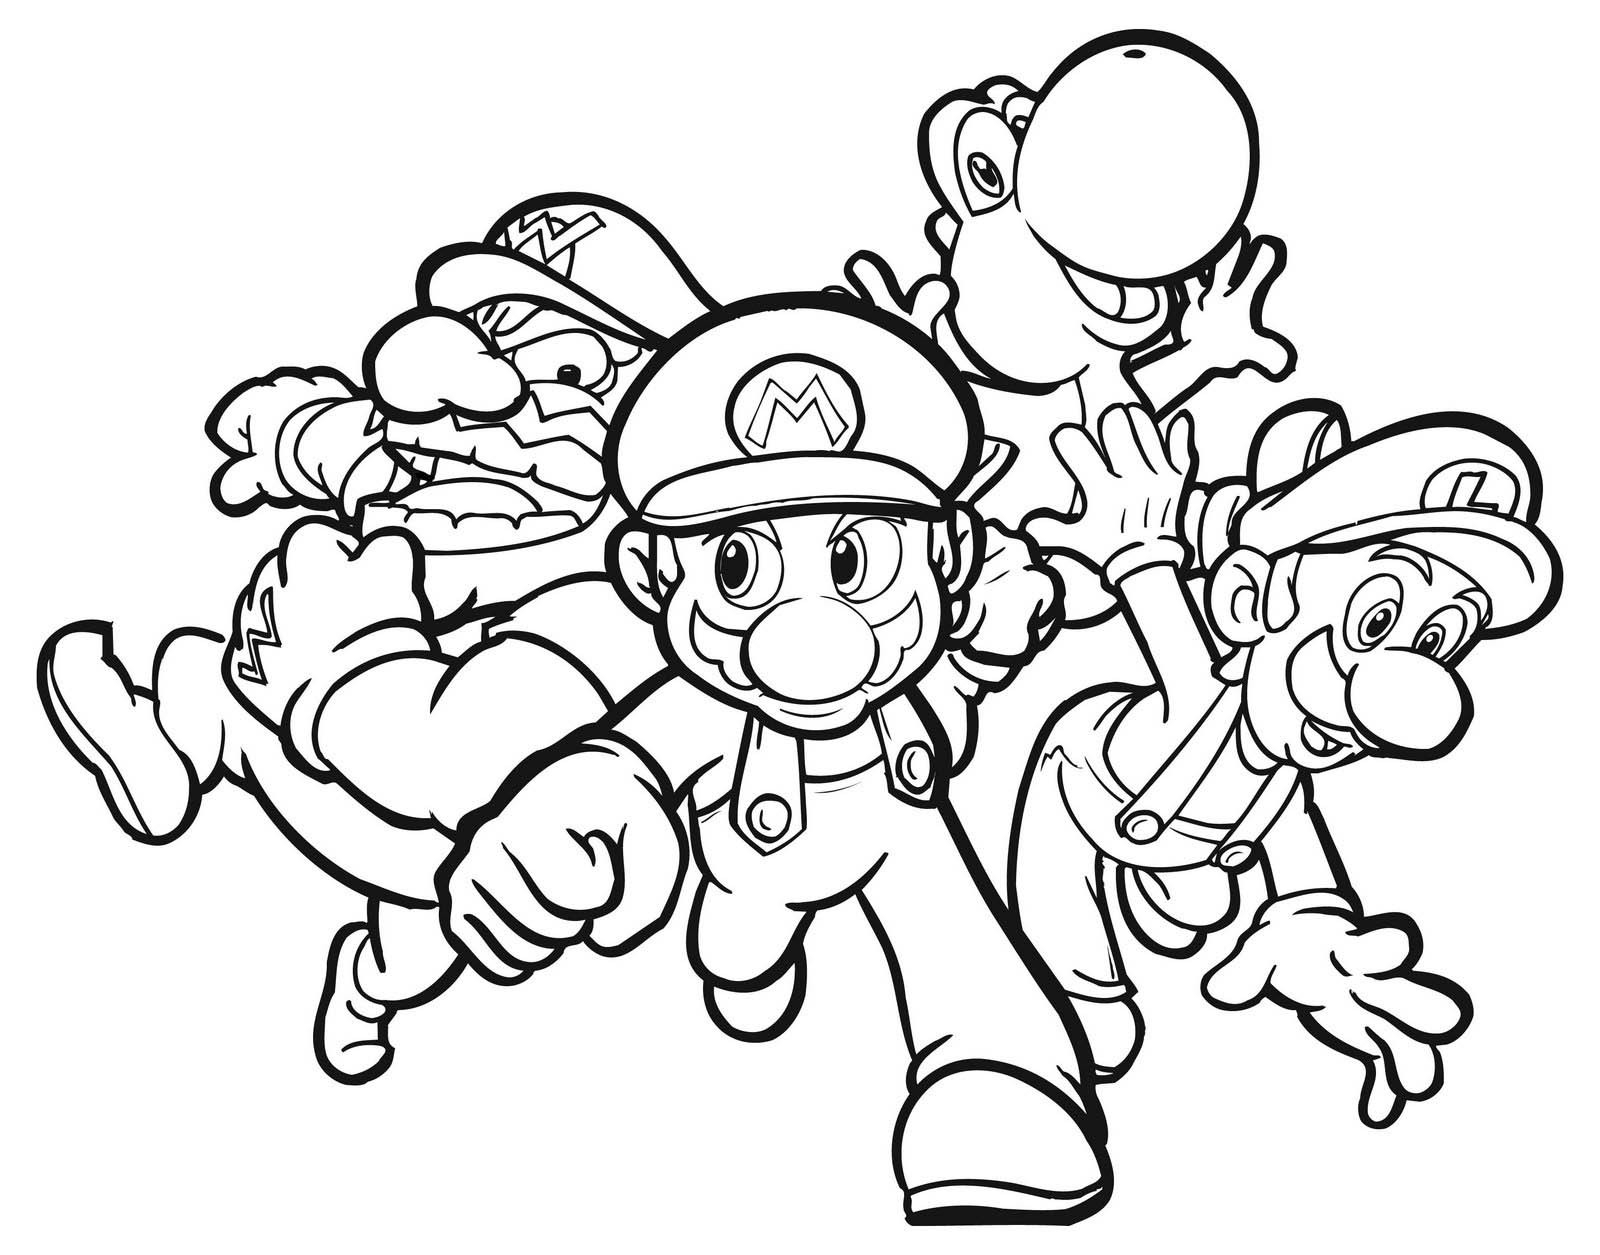 Best Coloring Pages 40 Best Of Pics Of Mario Coloring Pages to Print Download Of Super Mario Bros Coloring Pages to Print